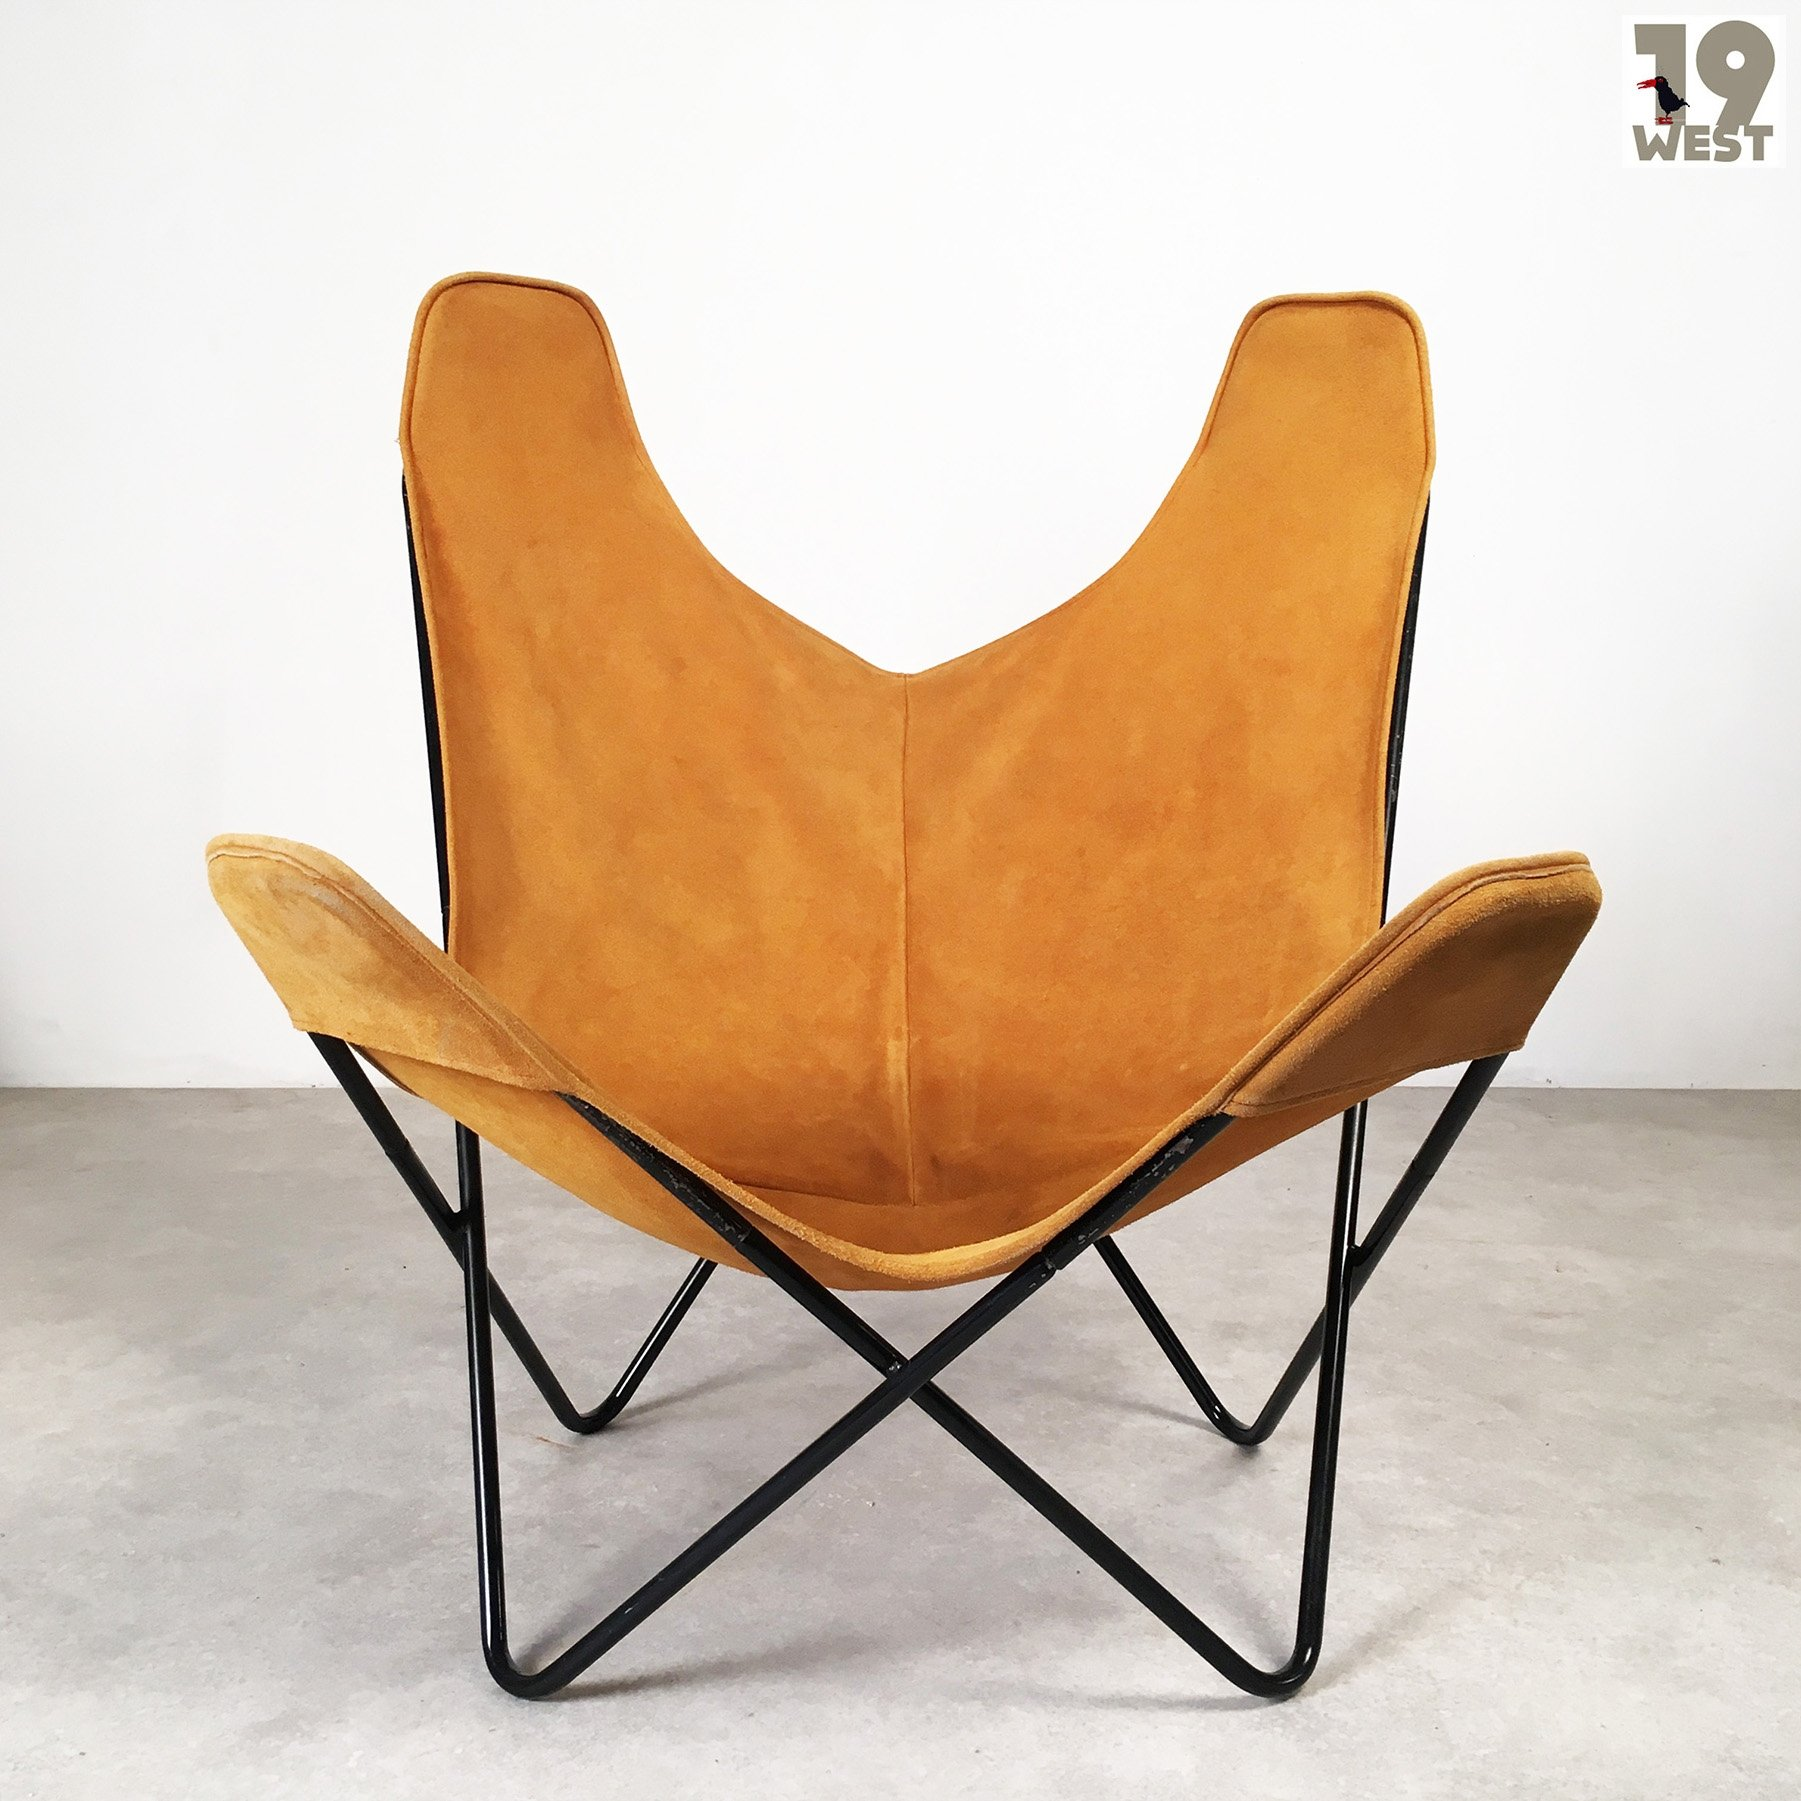 Butterfly lounge chair by Jorge Ferrari Hardoy for Knoll International 1950s